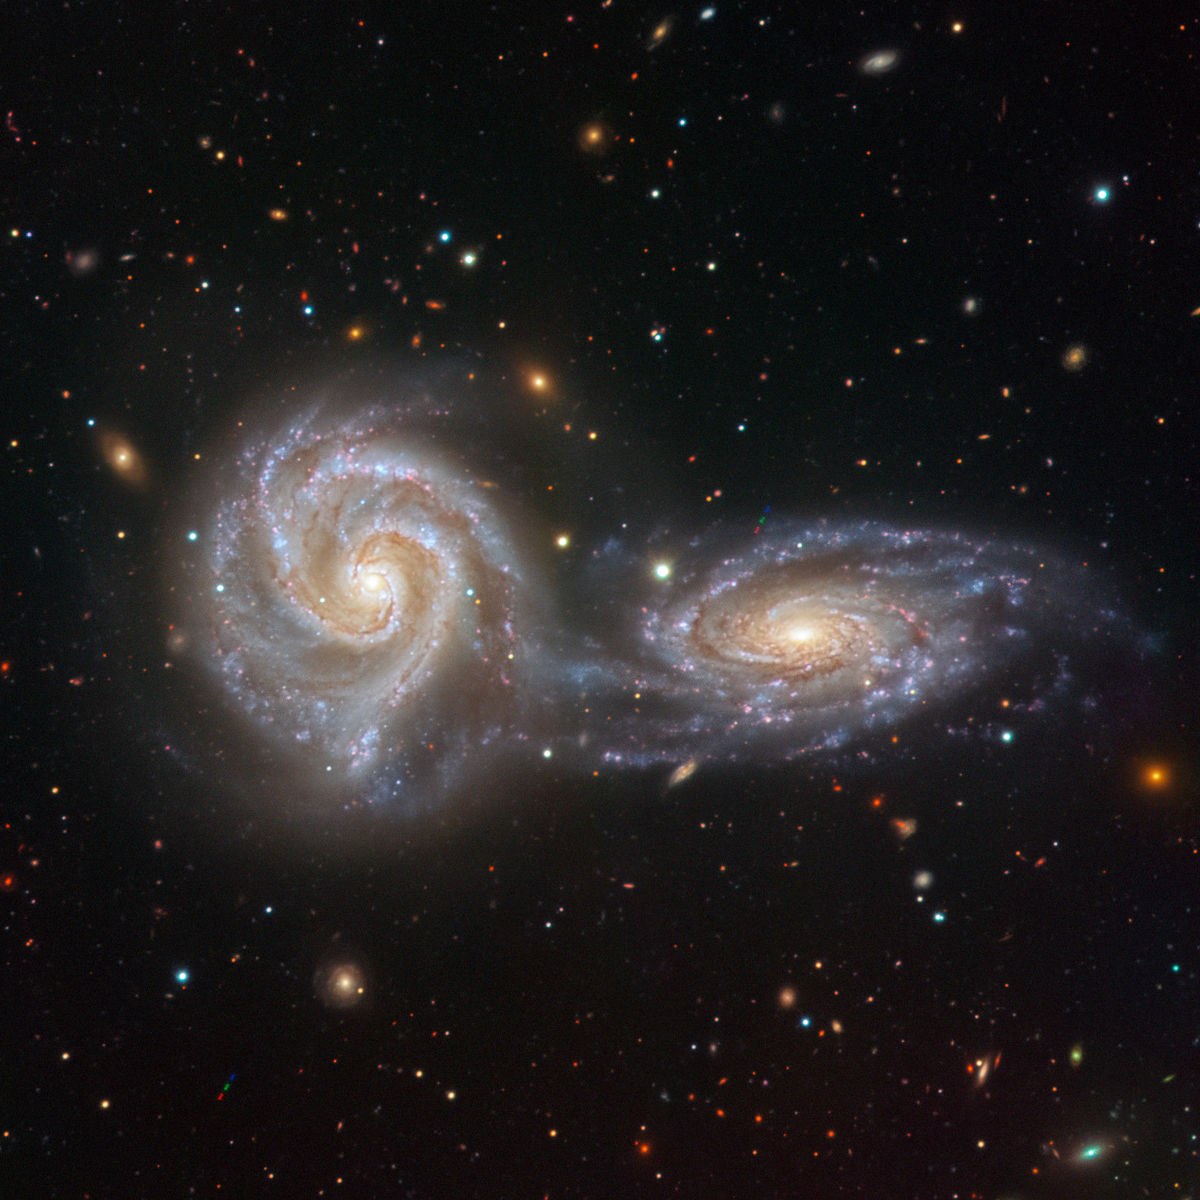 NGC 5426 (right) and NGC 5427 (left), together known as Arp 271, are close enough to each other to be interacting. Credit: ESO/Juan Carlos Muñoz​​​​​​​